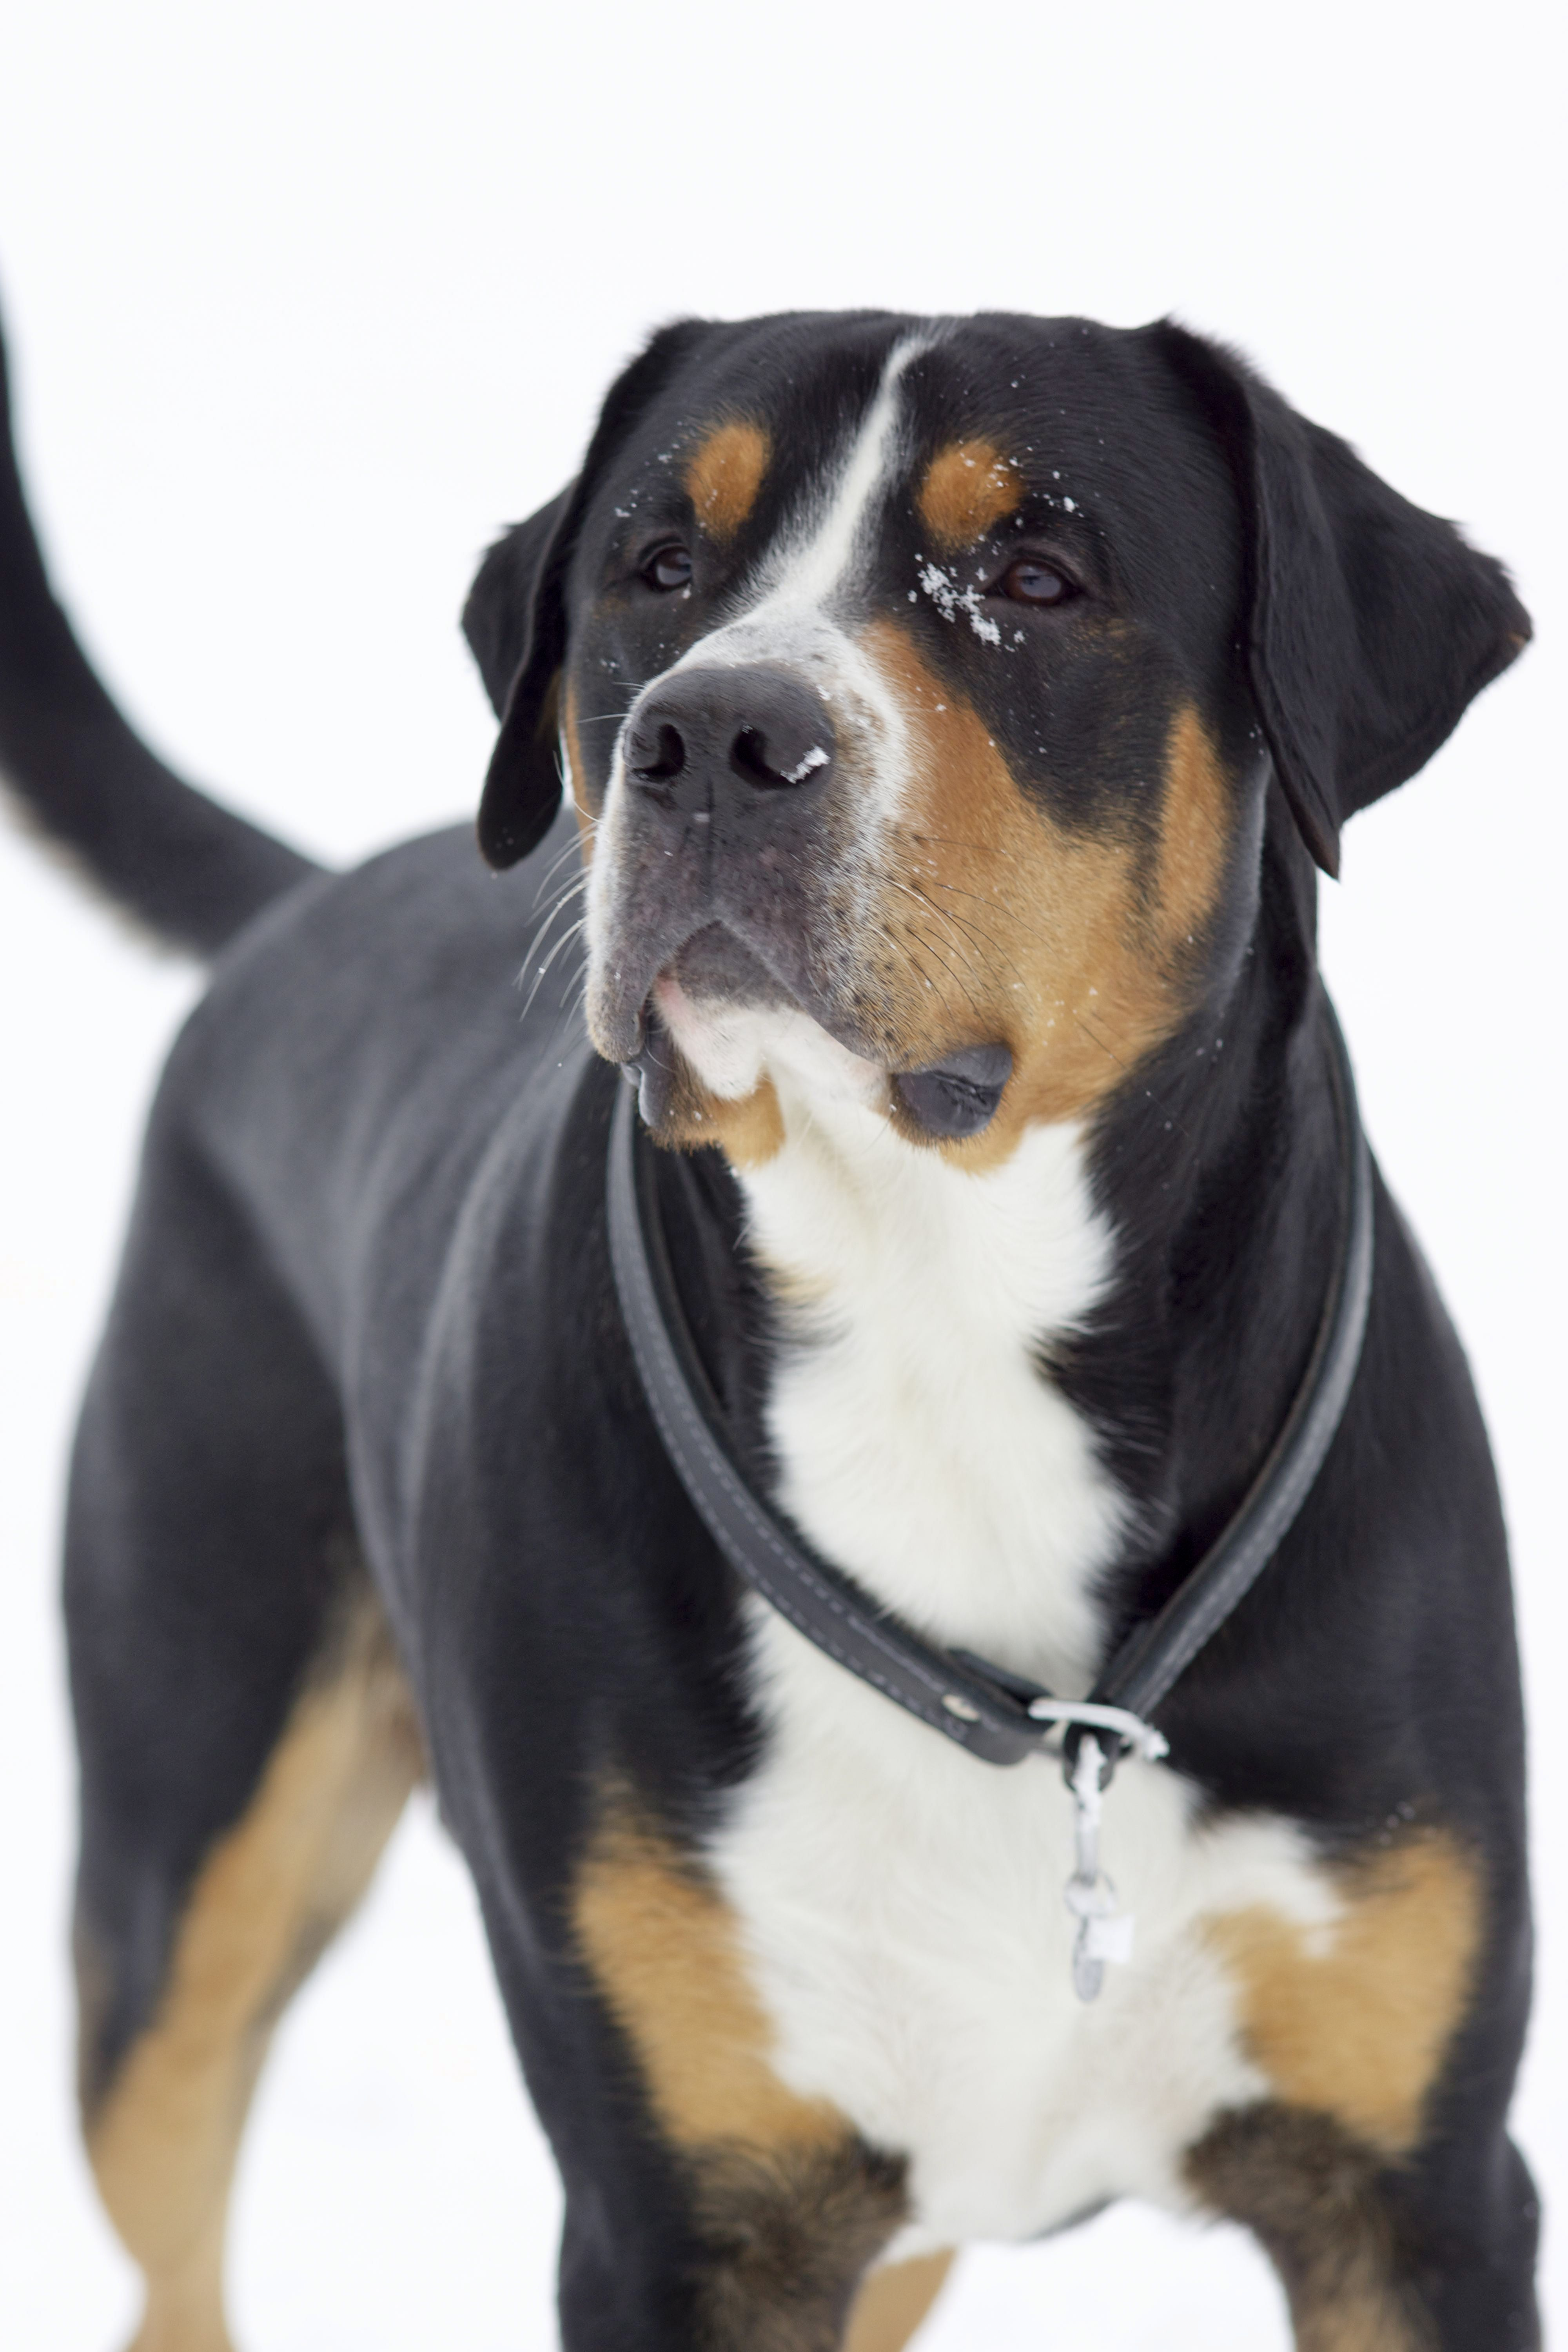 Greater Swiss Mountain Dog They Are Just So Cute When We Get A Dog It S Between This Breed And Th Great Swiss Mountain Dog Mountain Dogs Swiss Mountain Dogs